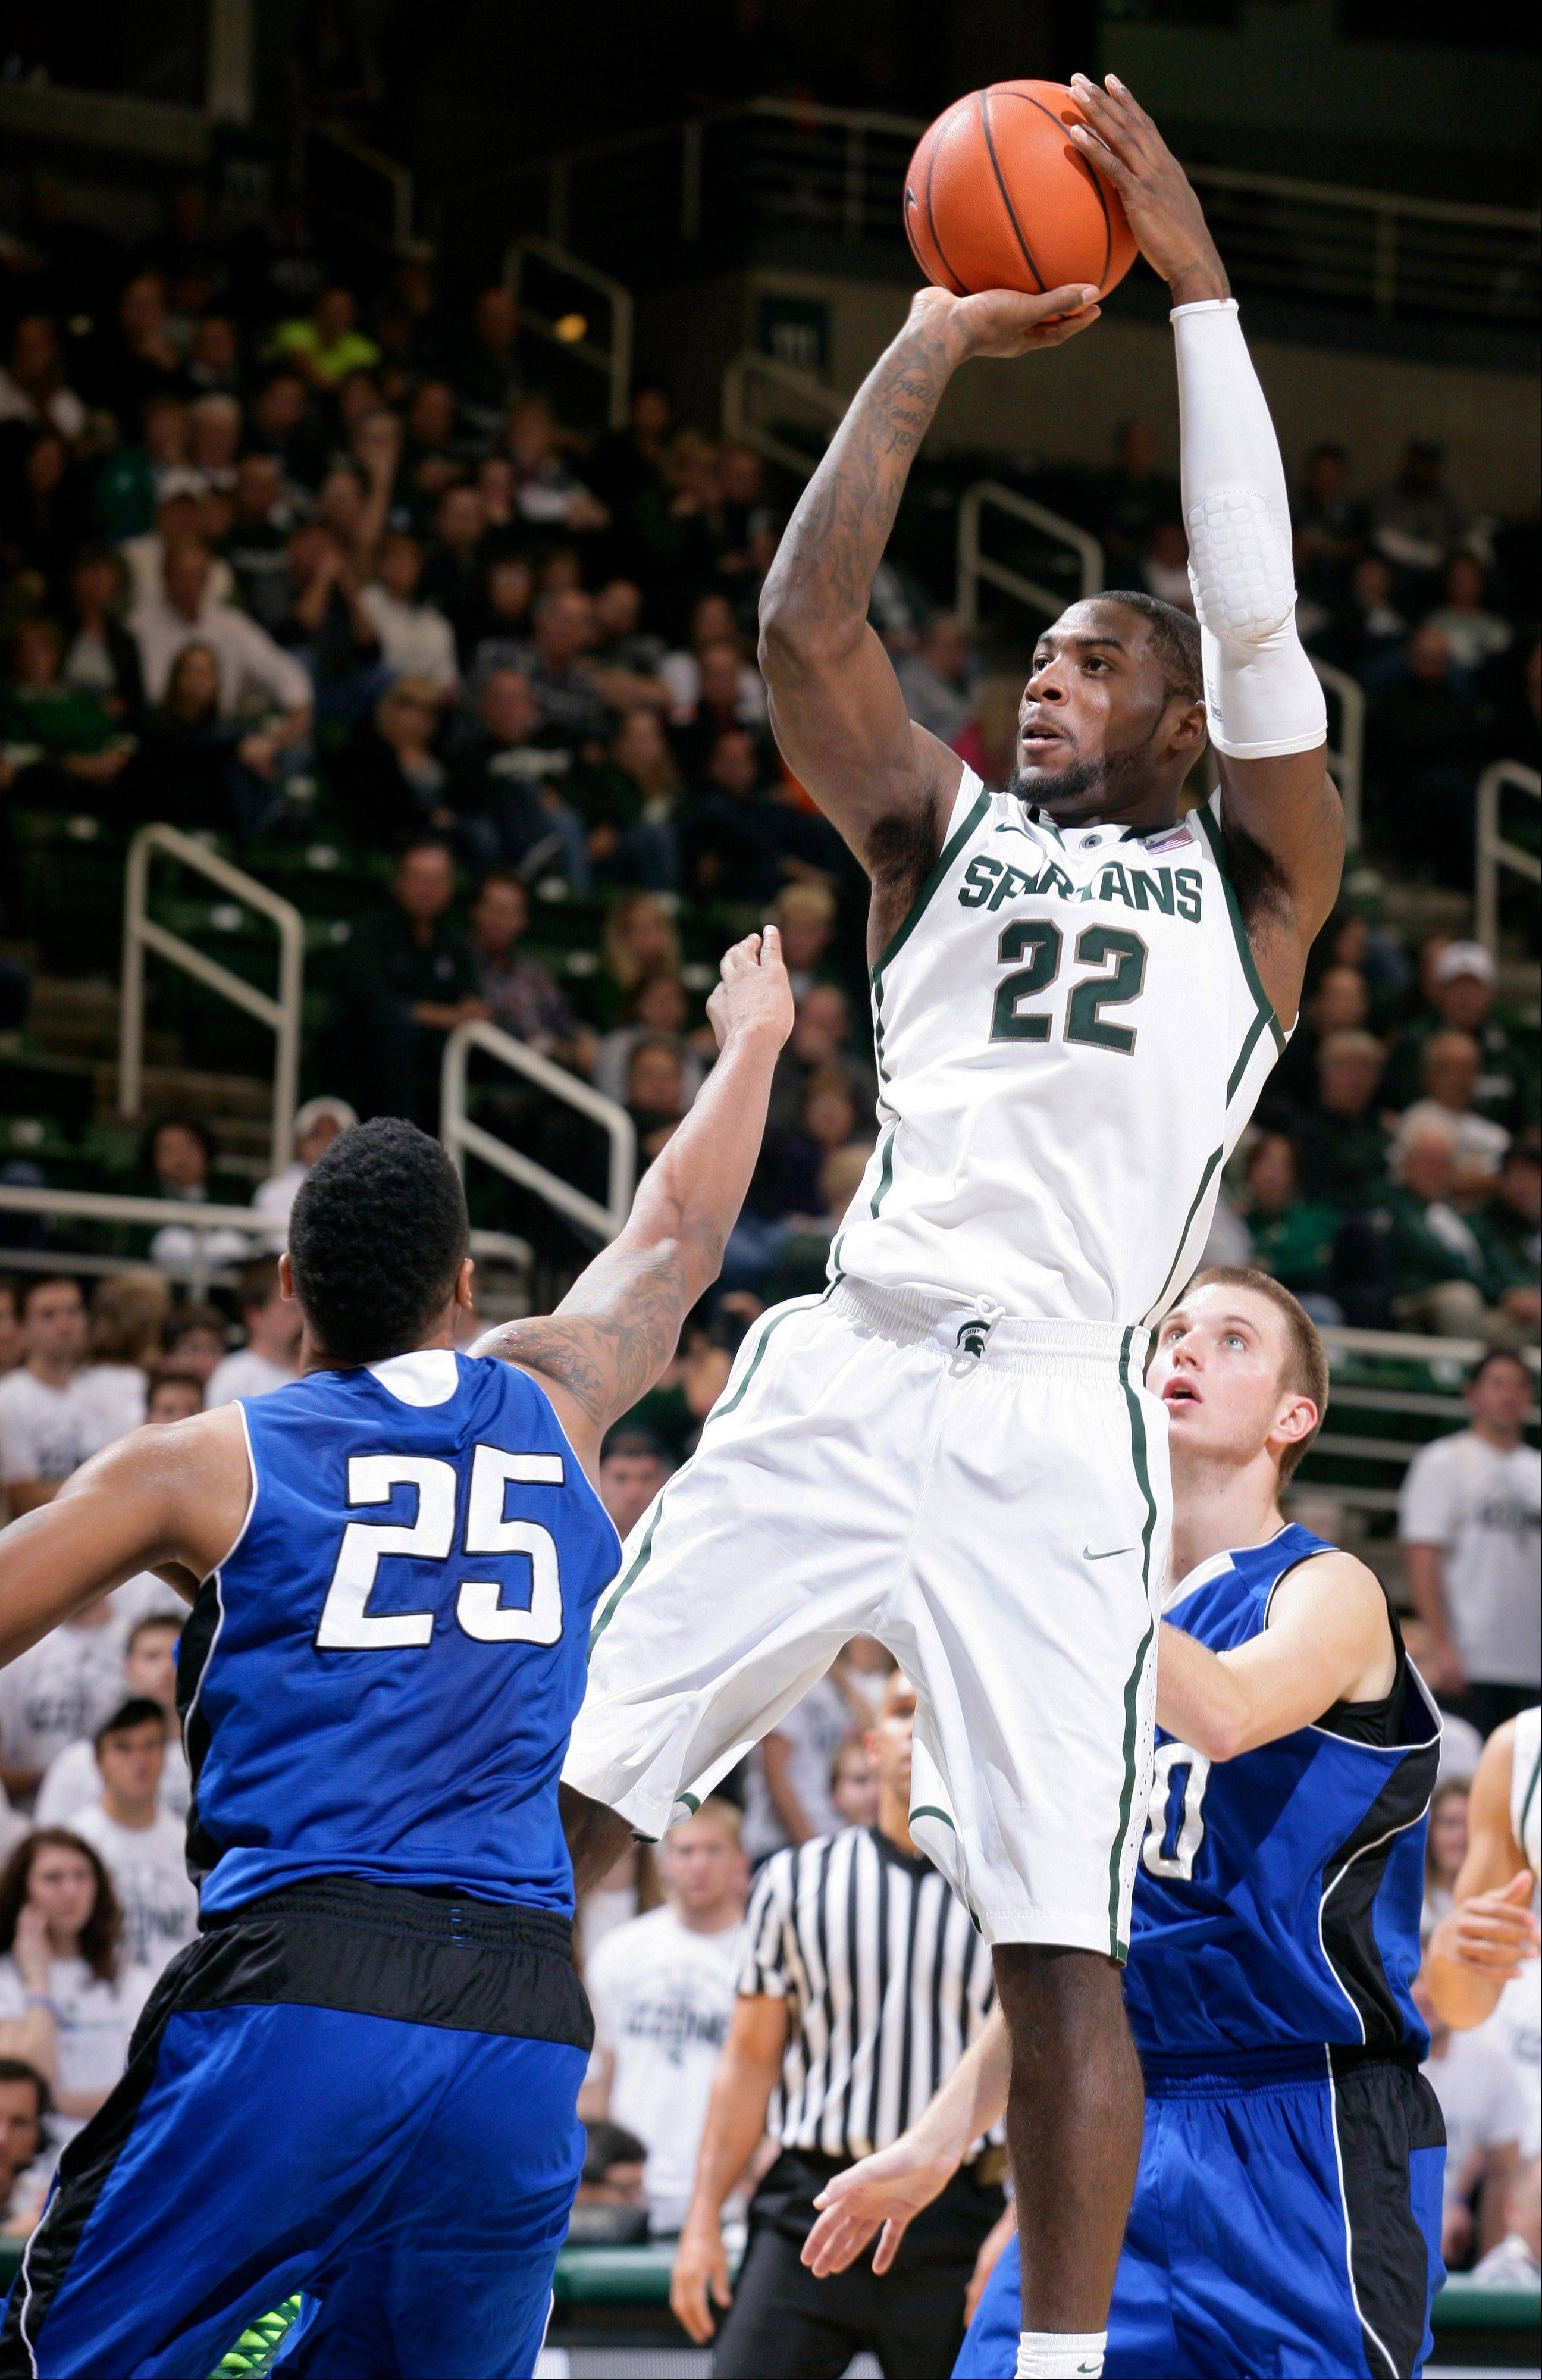 Michigan State's Branden Dawson shoots over Grand Valley State's Chaz Rollins during the second half of an exhibition game\ Tuesday in East Lansing, Mich. Michigan State won 101-52.